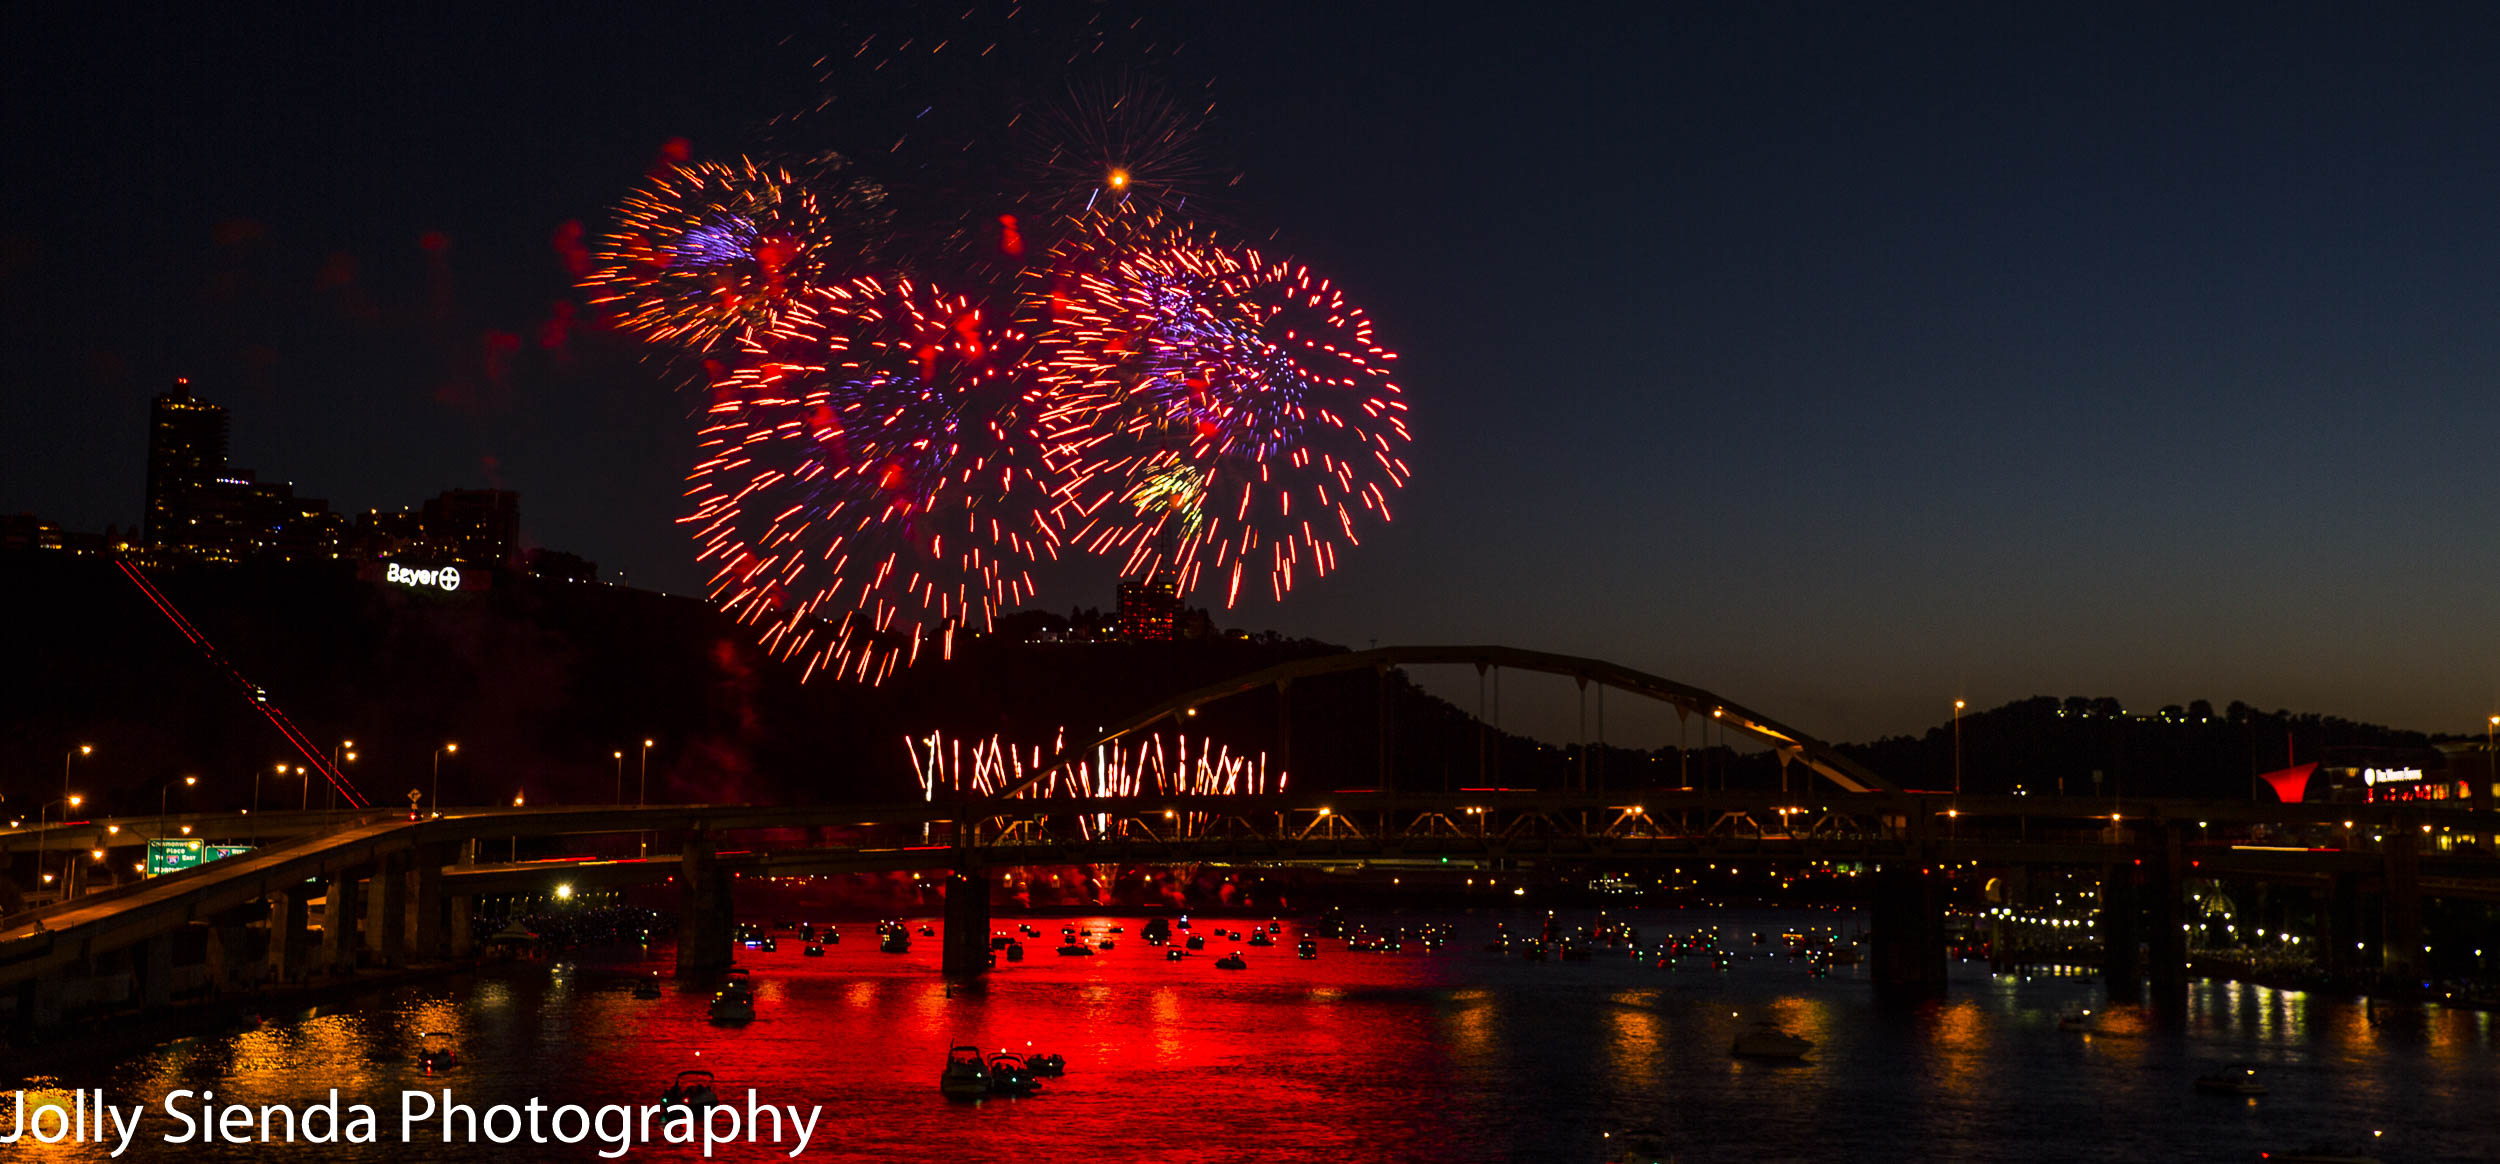 Large cluster firework bursts over the Monongahela River in Pittsburg, PA.